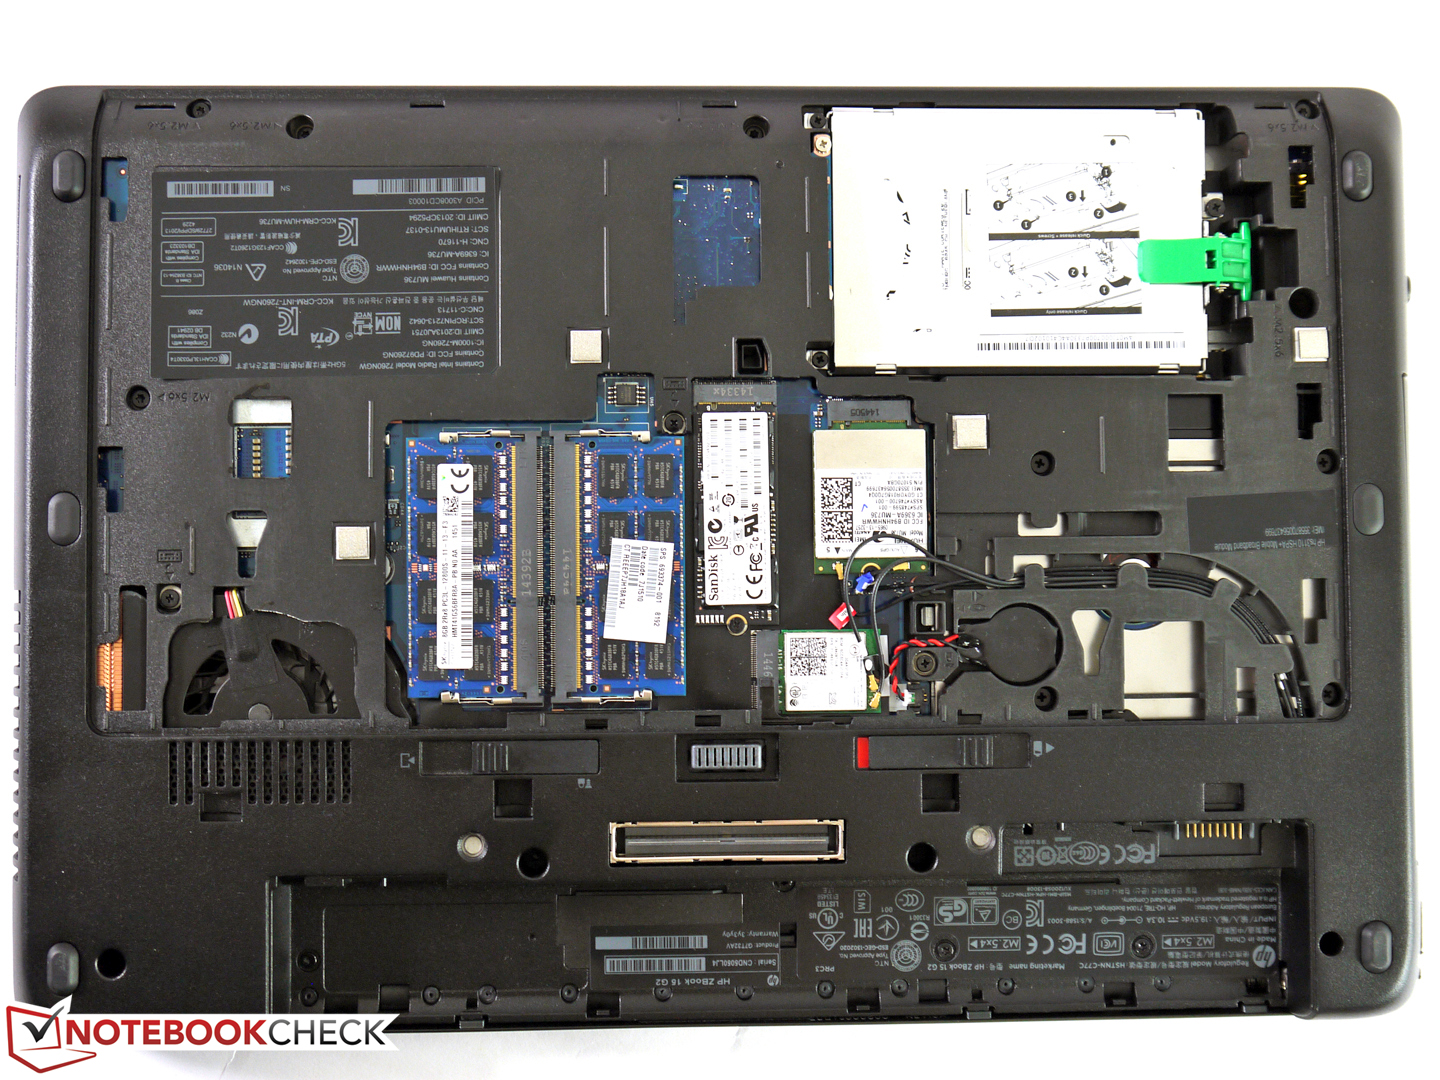 Hp Zbook 15 G2 Workstation Long Term Review Reviews Circuit Board Computer Motherboard Note Pad Spiral Notebook Zazzle